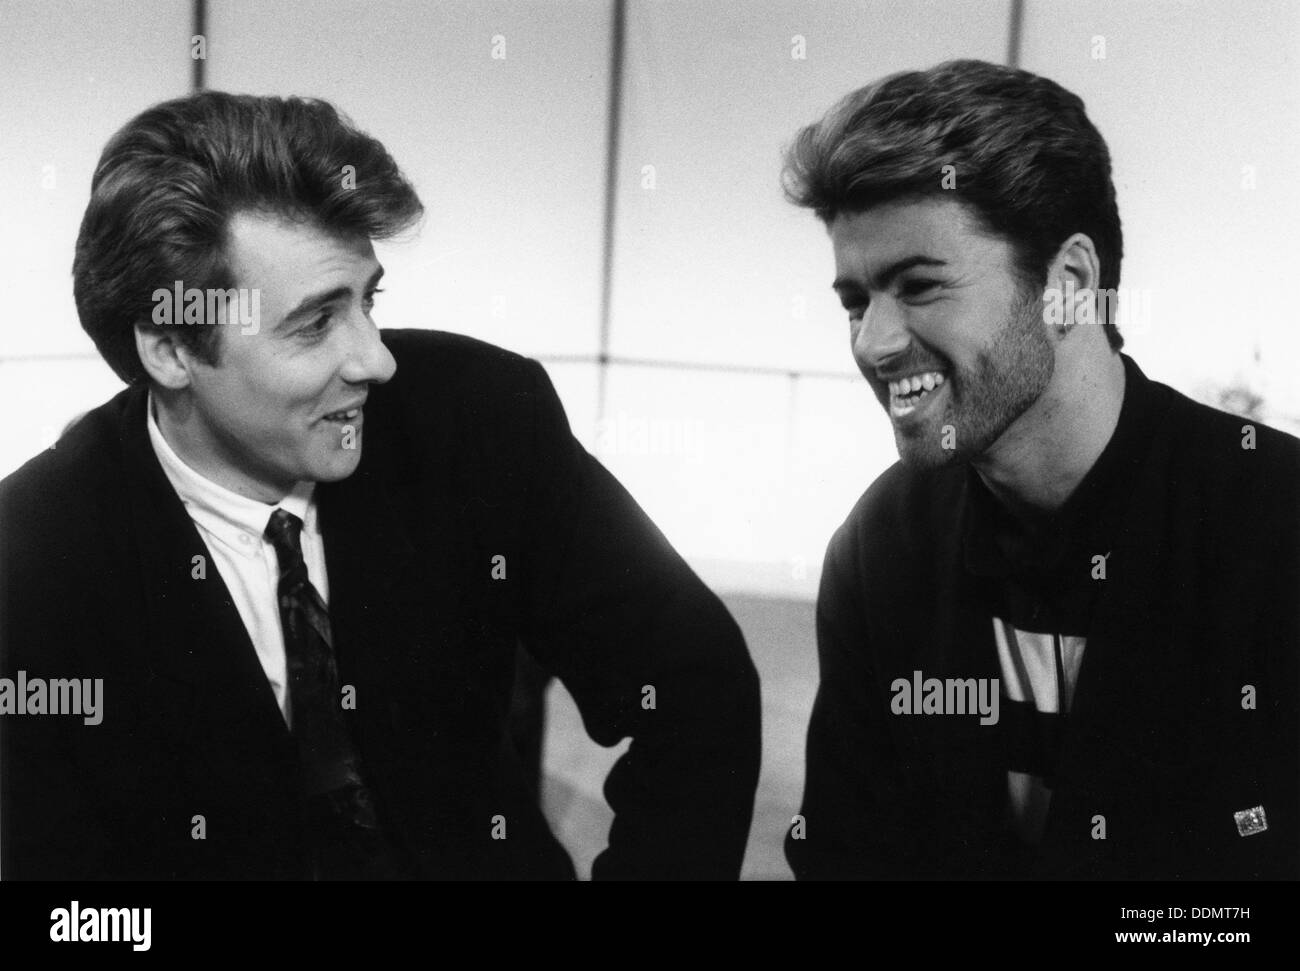 George Michael, British pop singer, and Jonathan Ross, British comedian and TV personality. - Stock Image